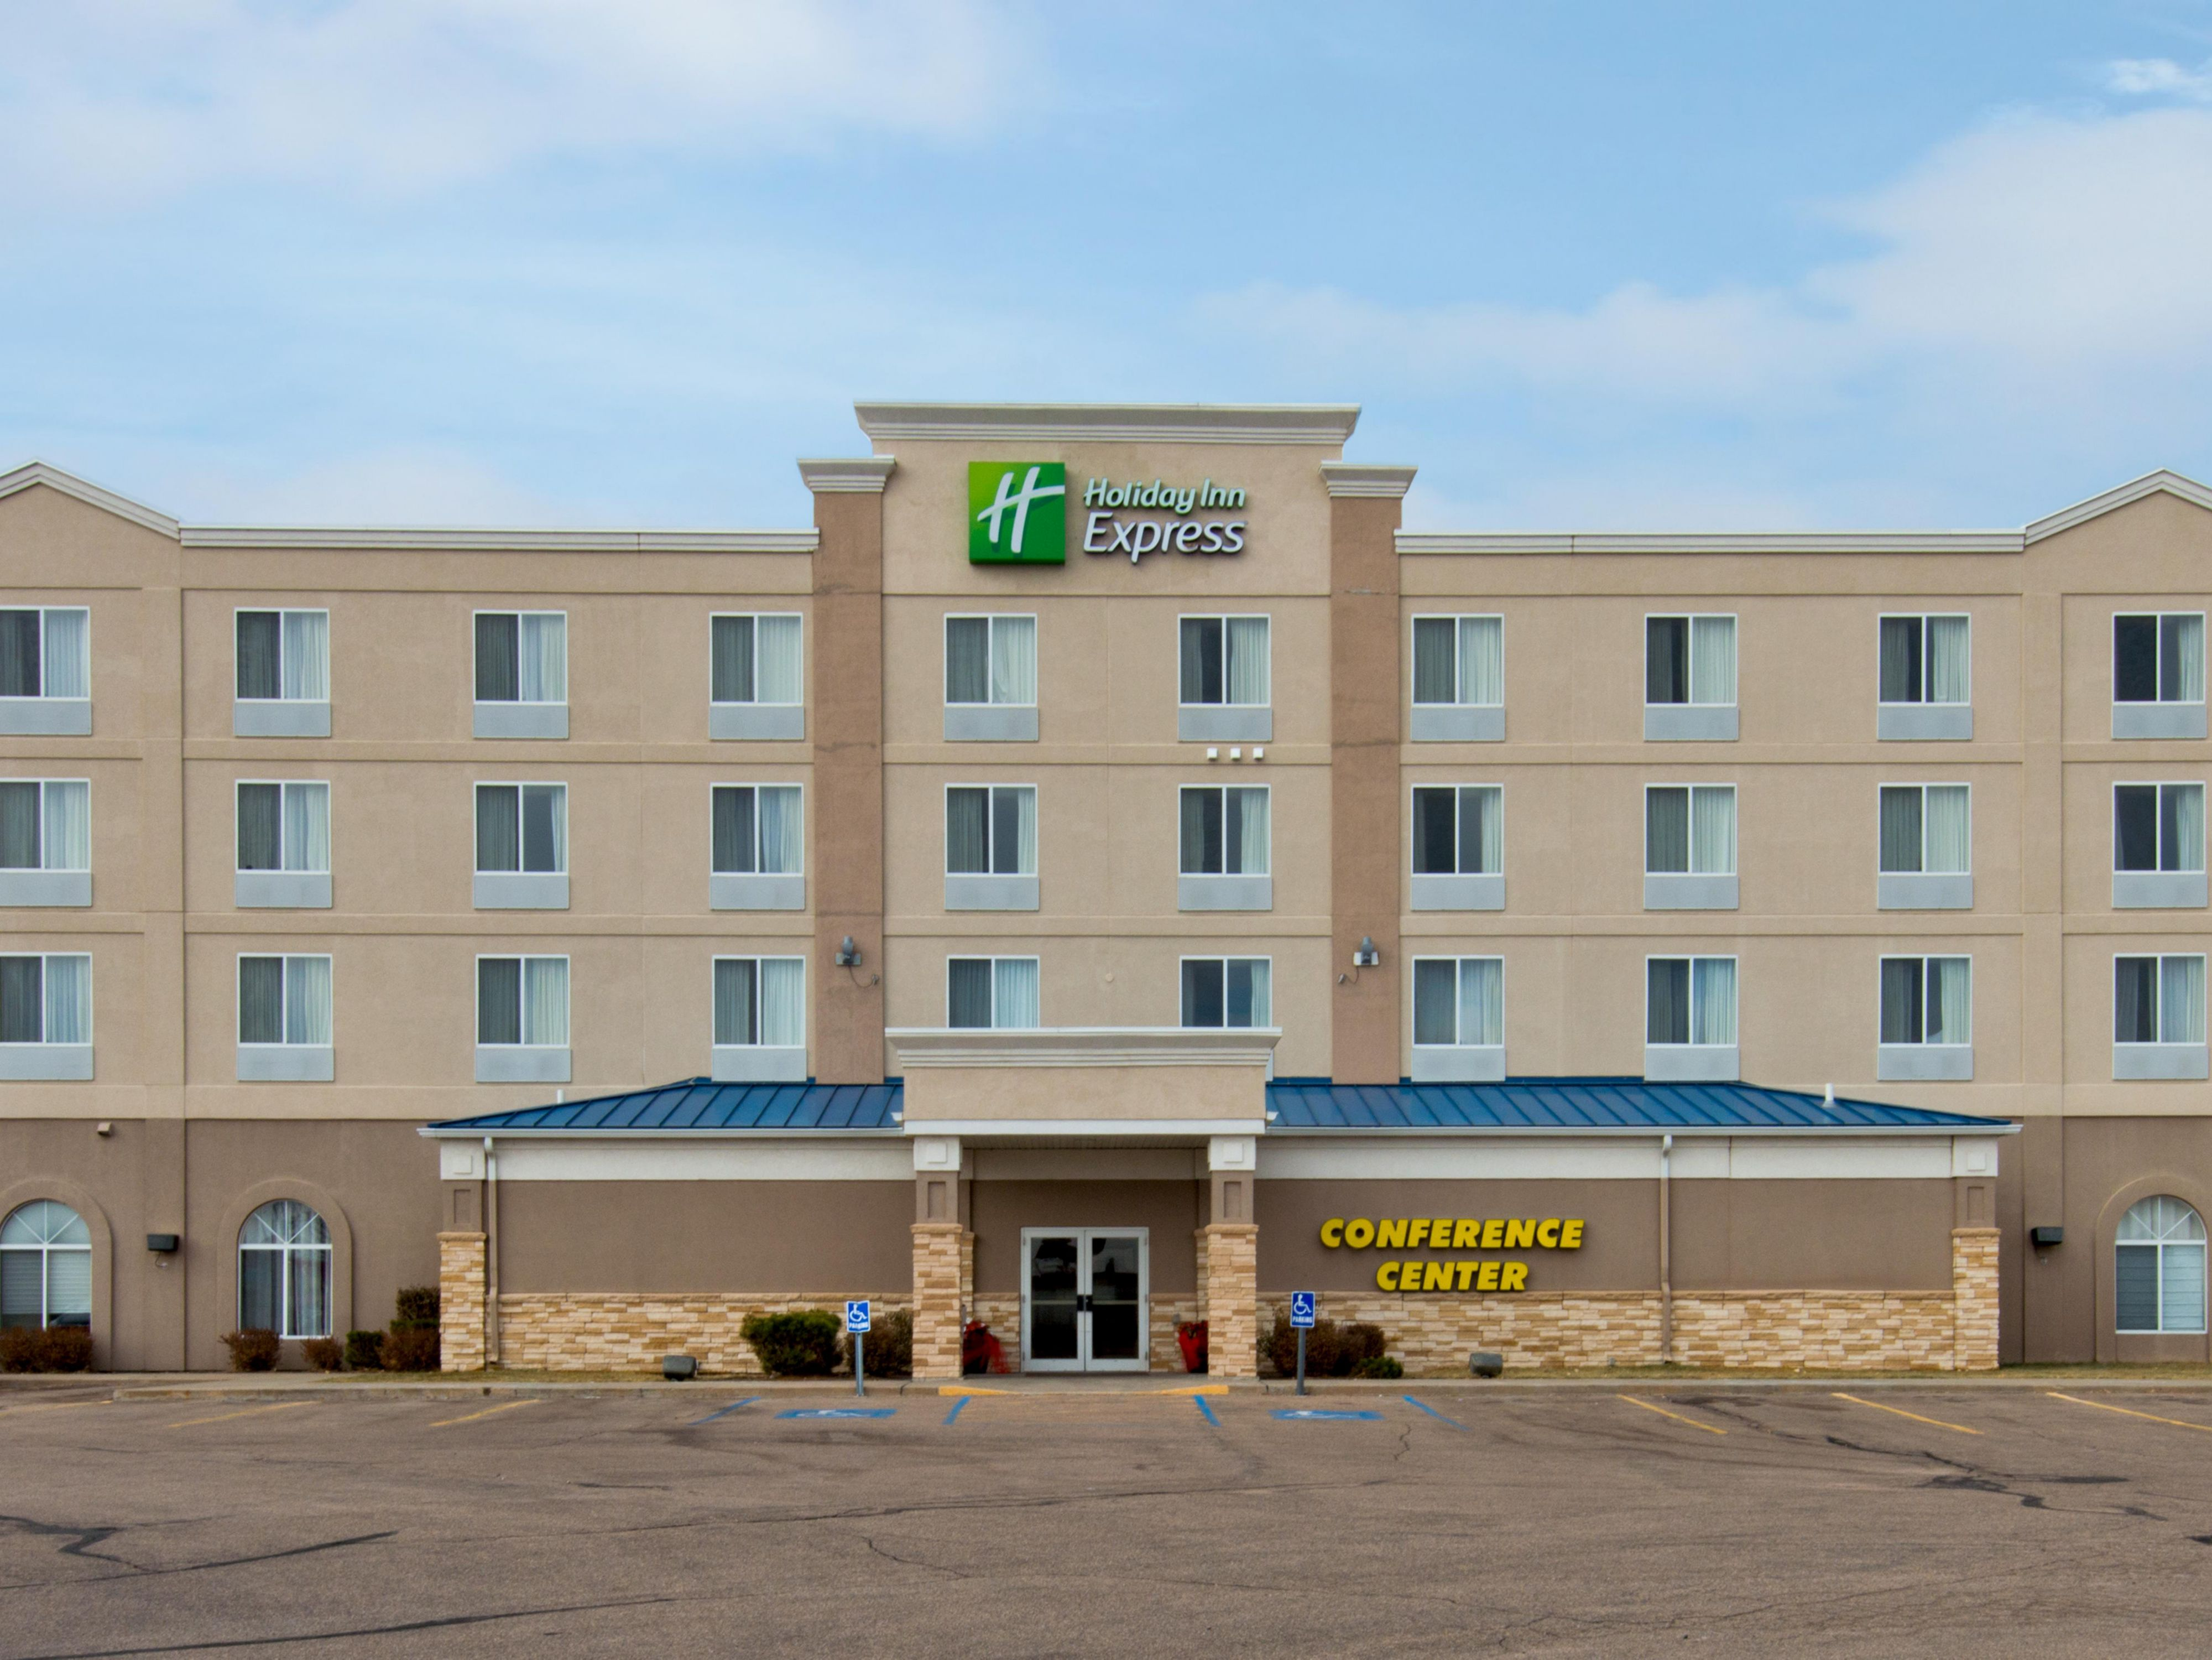 Holiday Inn Express North Platte Looks Forward to Welcoming  You